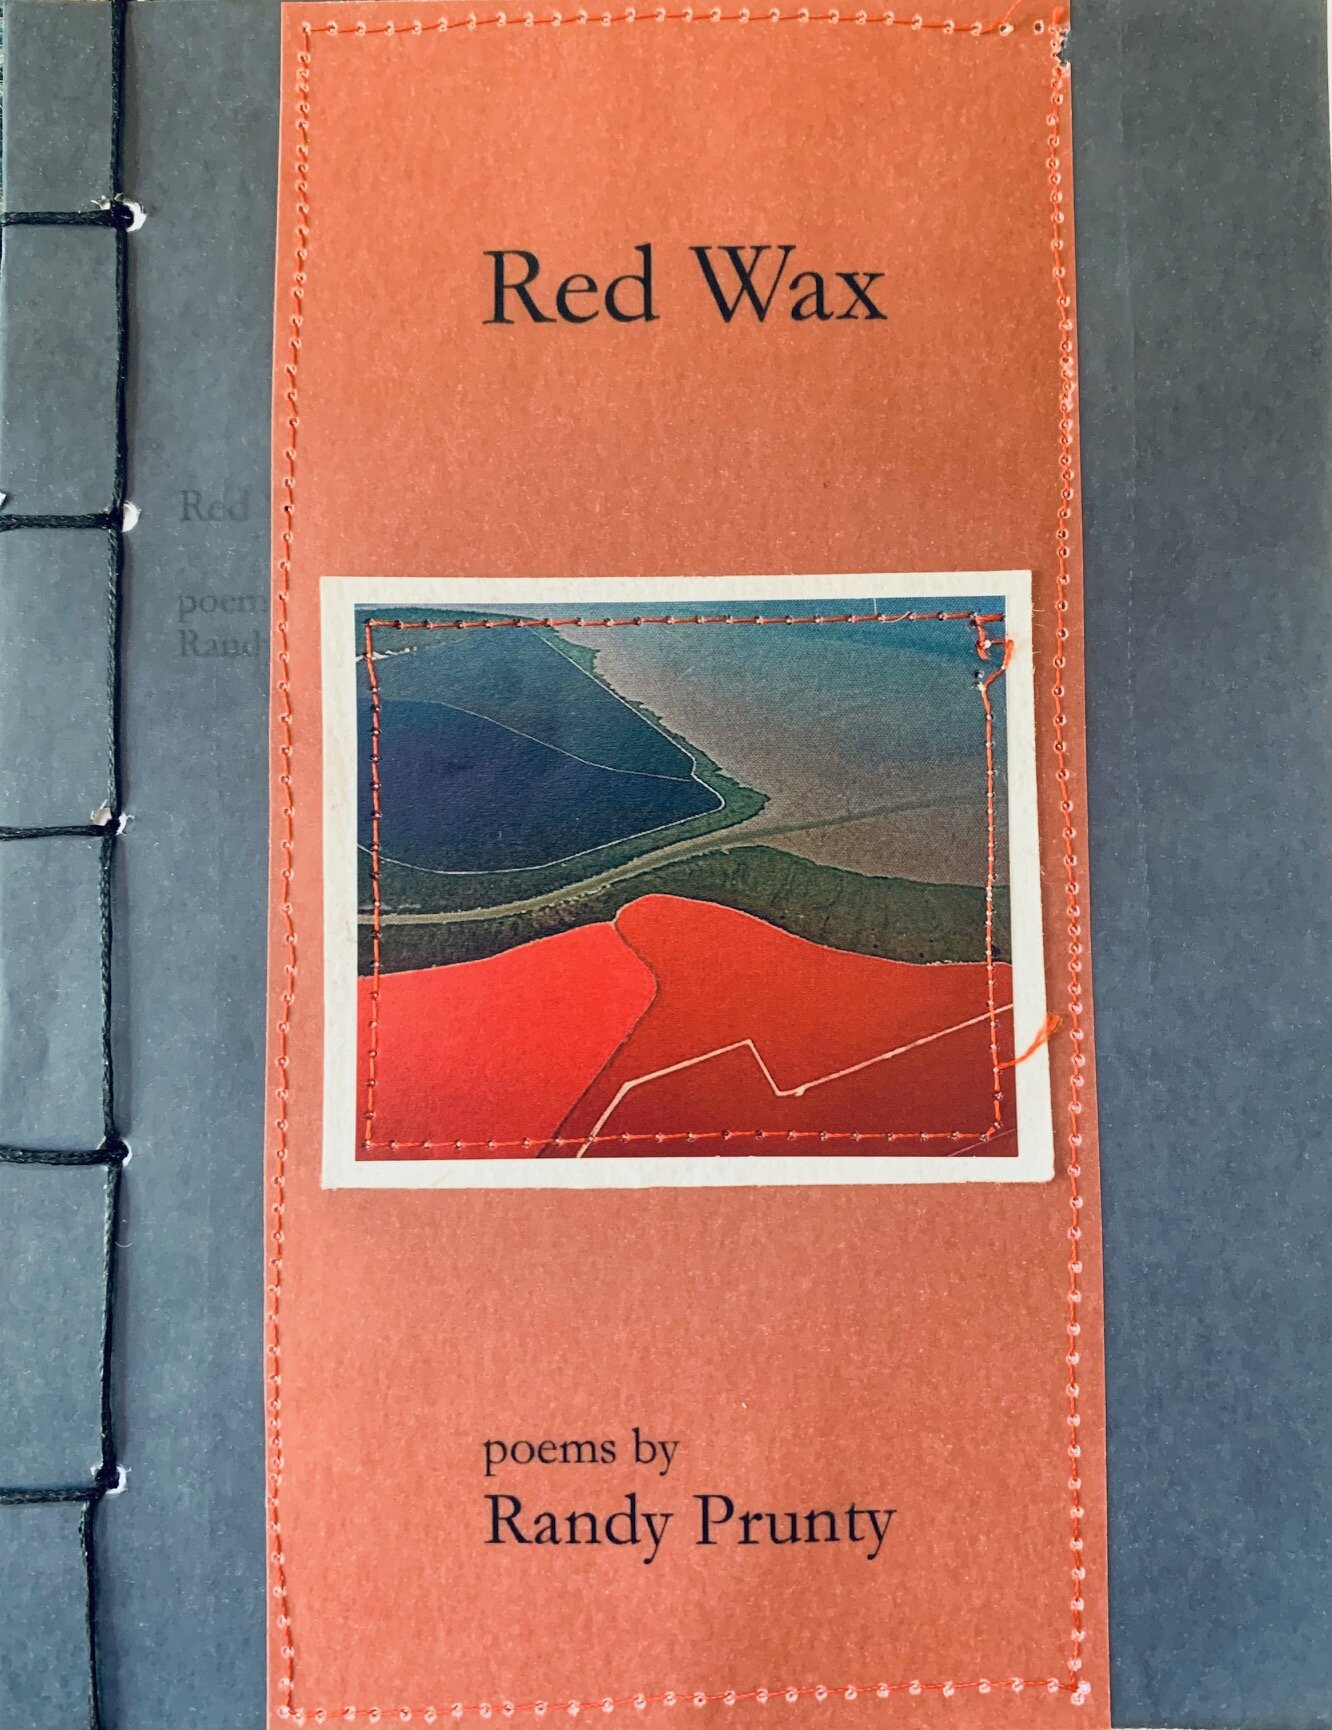 red wax - byRandy PruntyRandy Prunty lives in Oakland, California where he works as a bus driver. In 2016, Moria Books published his chapbook Pretend I'm Me. Previous chapbooks, Van Gogh Talks and Delusiveness, were published by the press Thirdness, and Fish Log was published by Lavender Ink. Recent work has appeared in talking about strawberries all of the time,Caliban, New American Writing, where is the river, Marsh Hawk Review, andthe tiny. He is married to the poet Elizabeth Robinson.